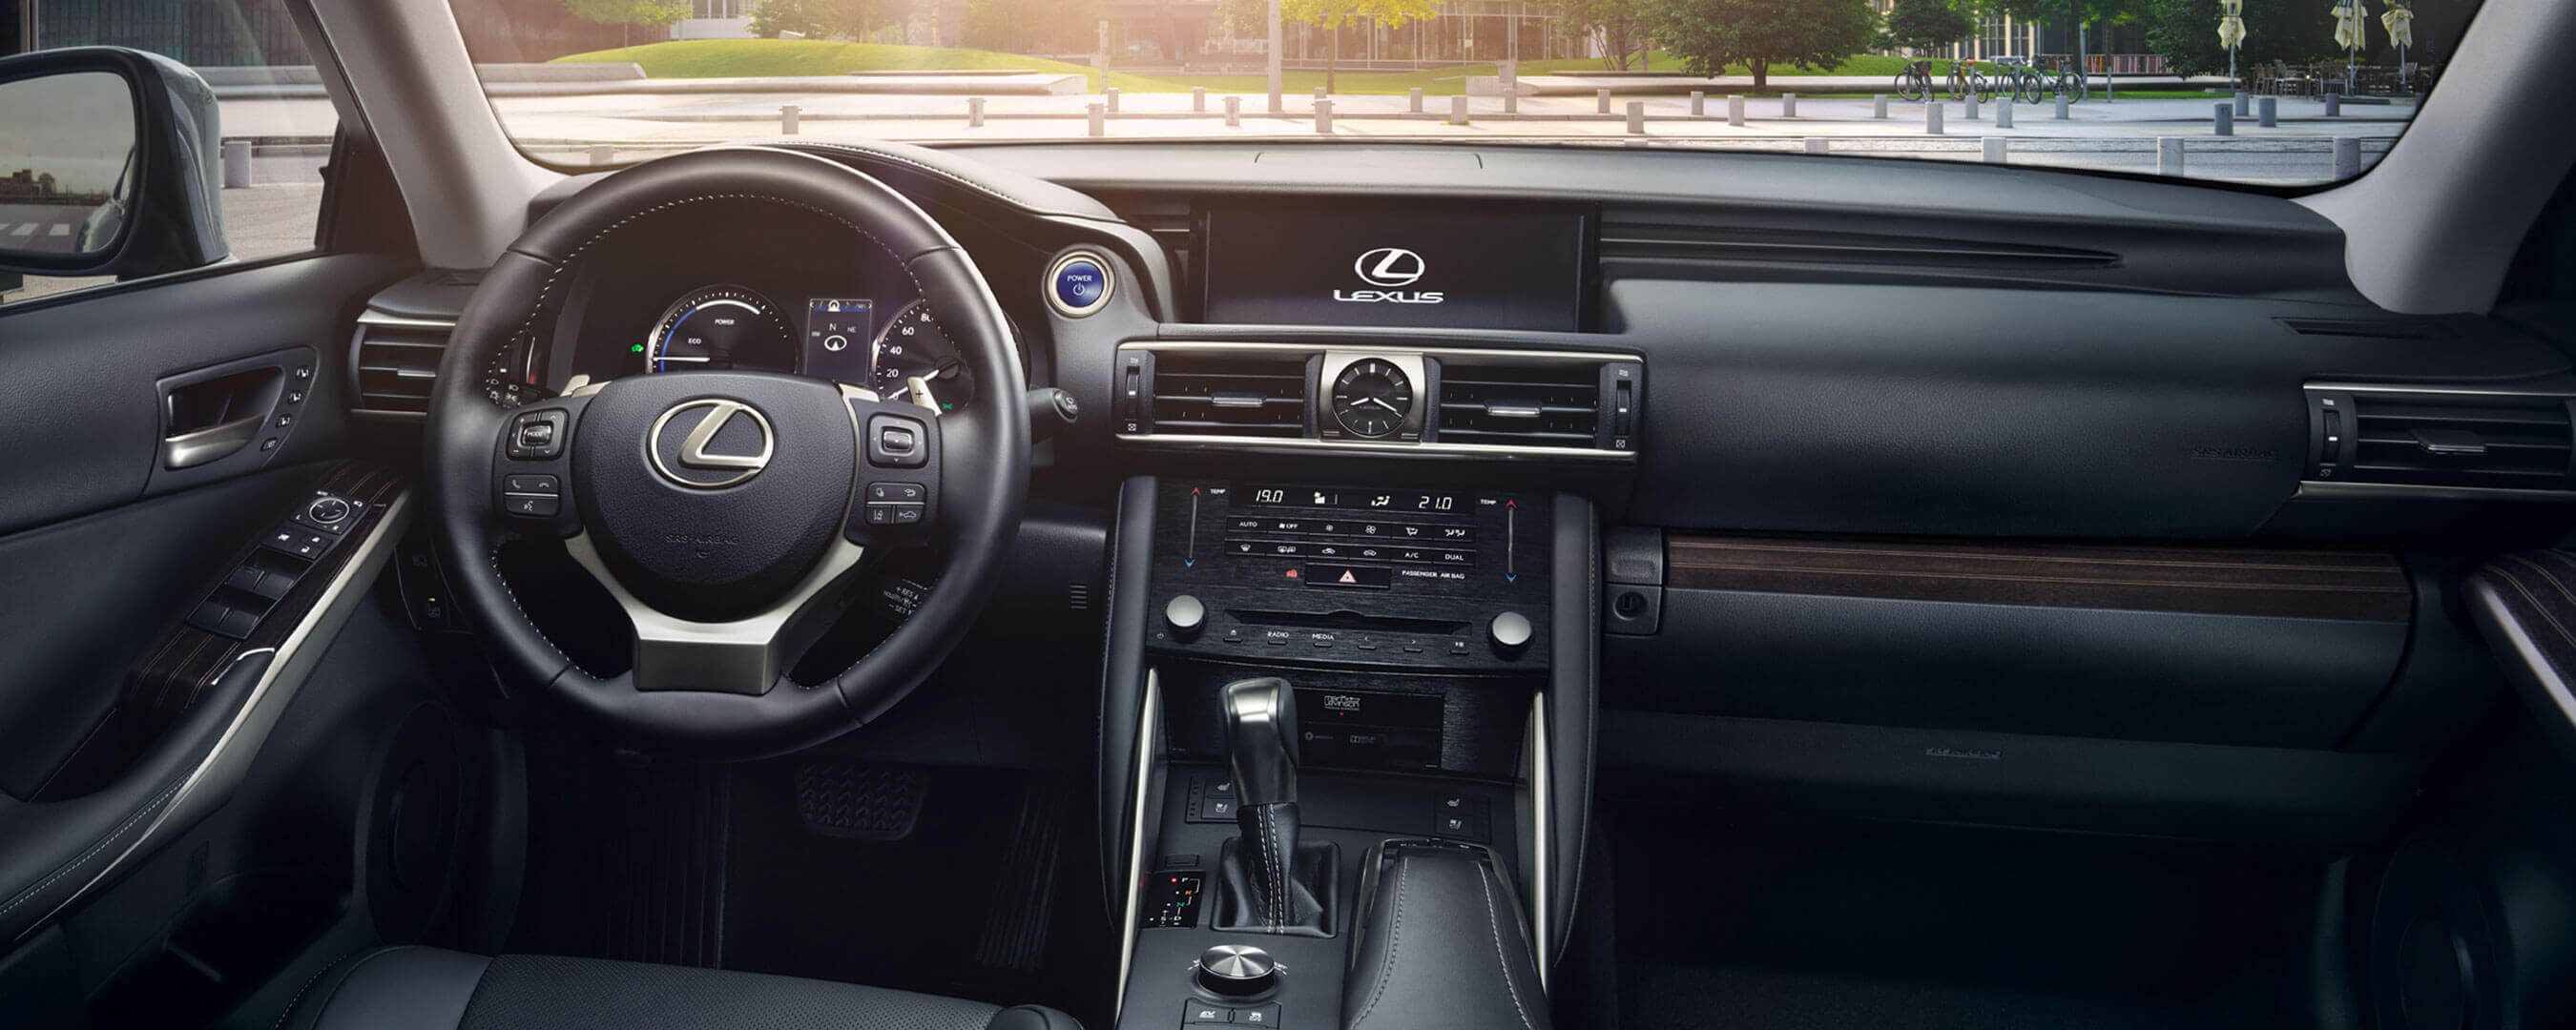 2017 lexus is 300h experience hero interior front